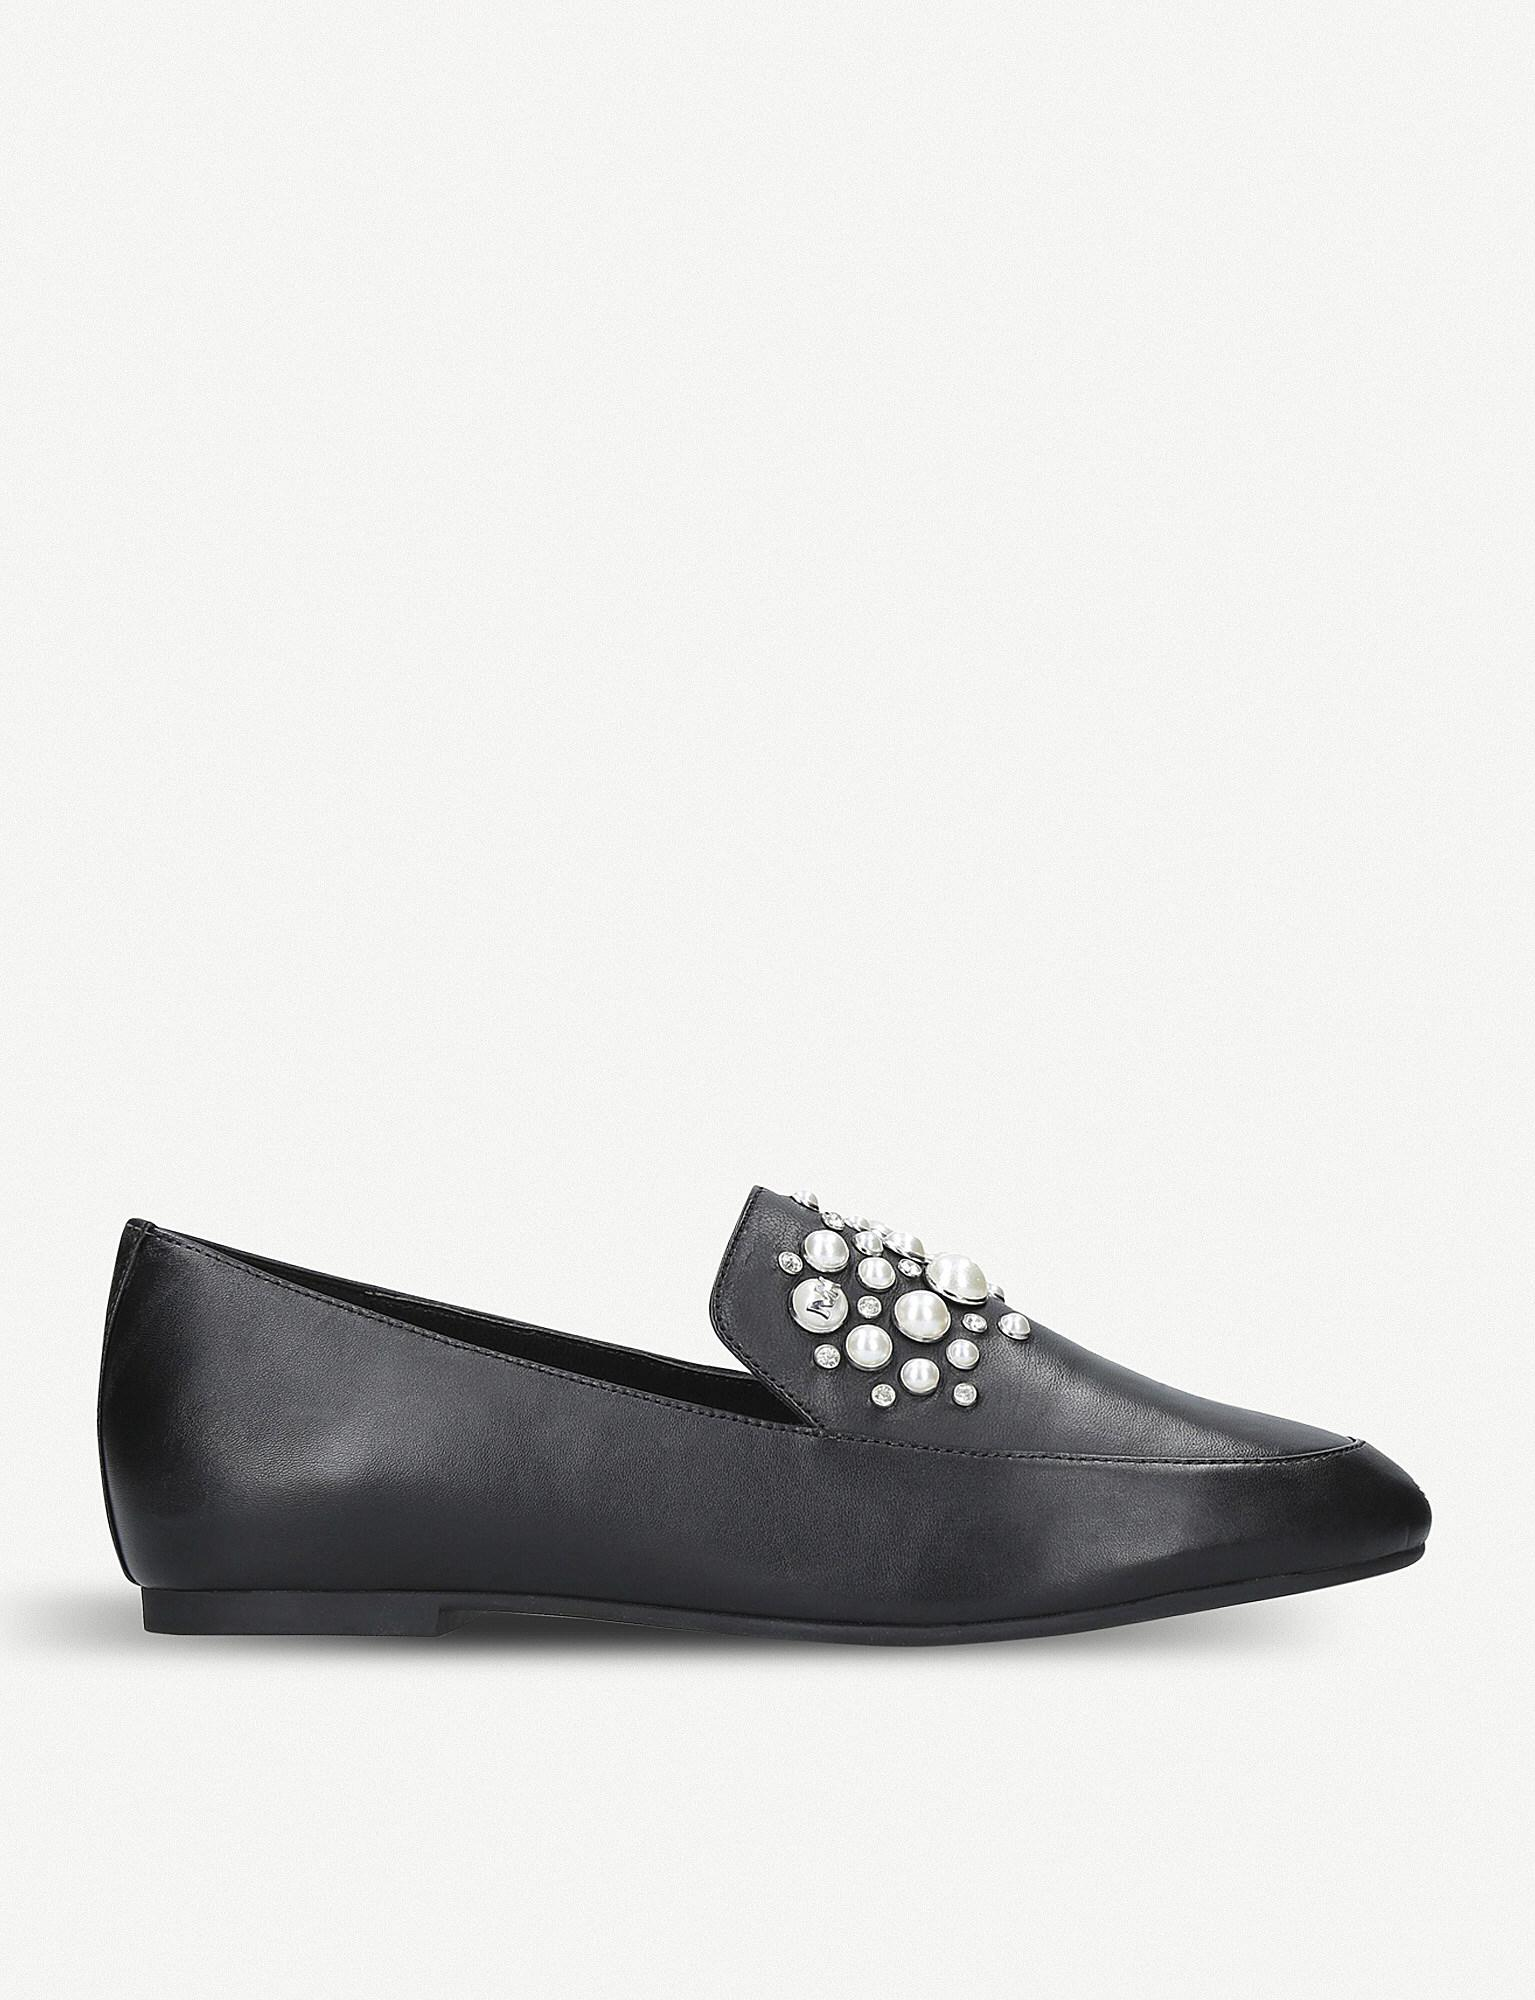 Gia embellished loafers - Black Michael Michael Kors